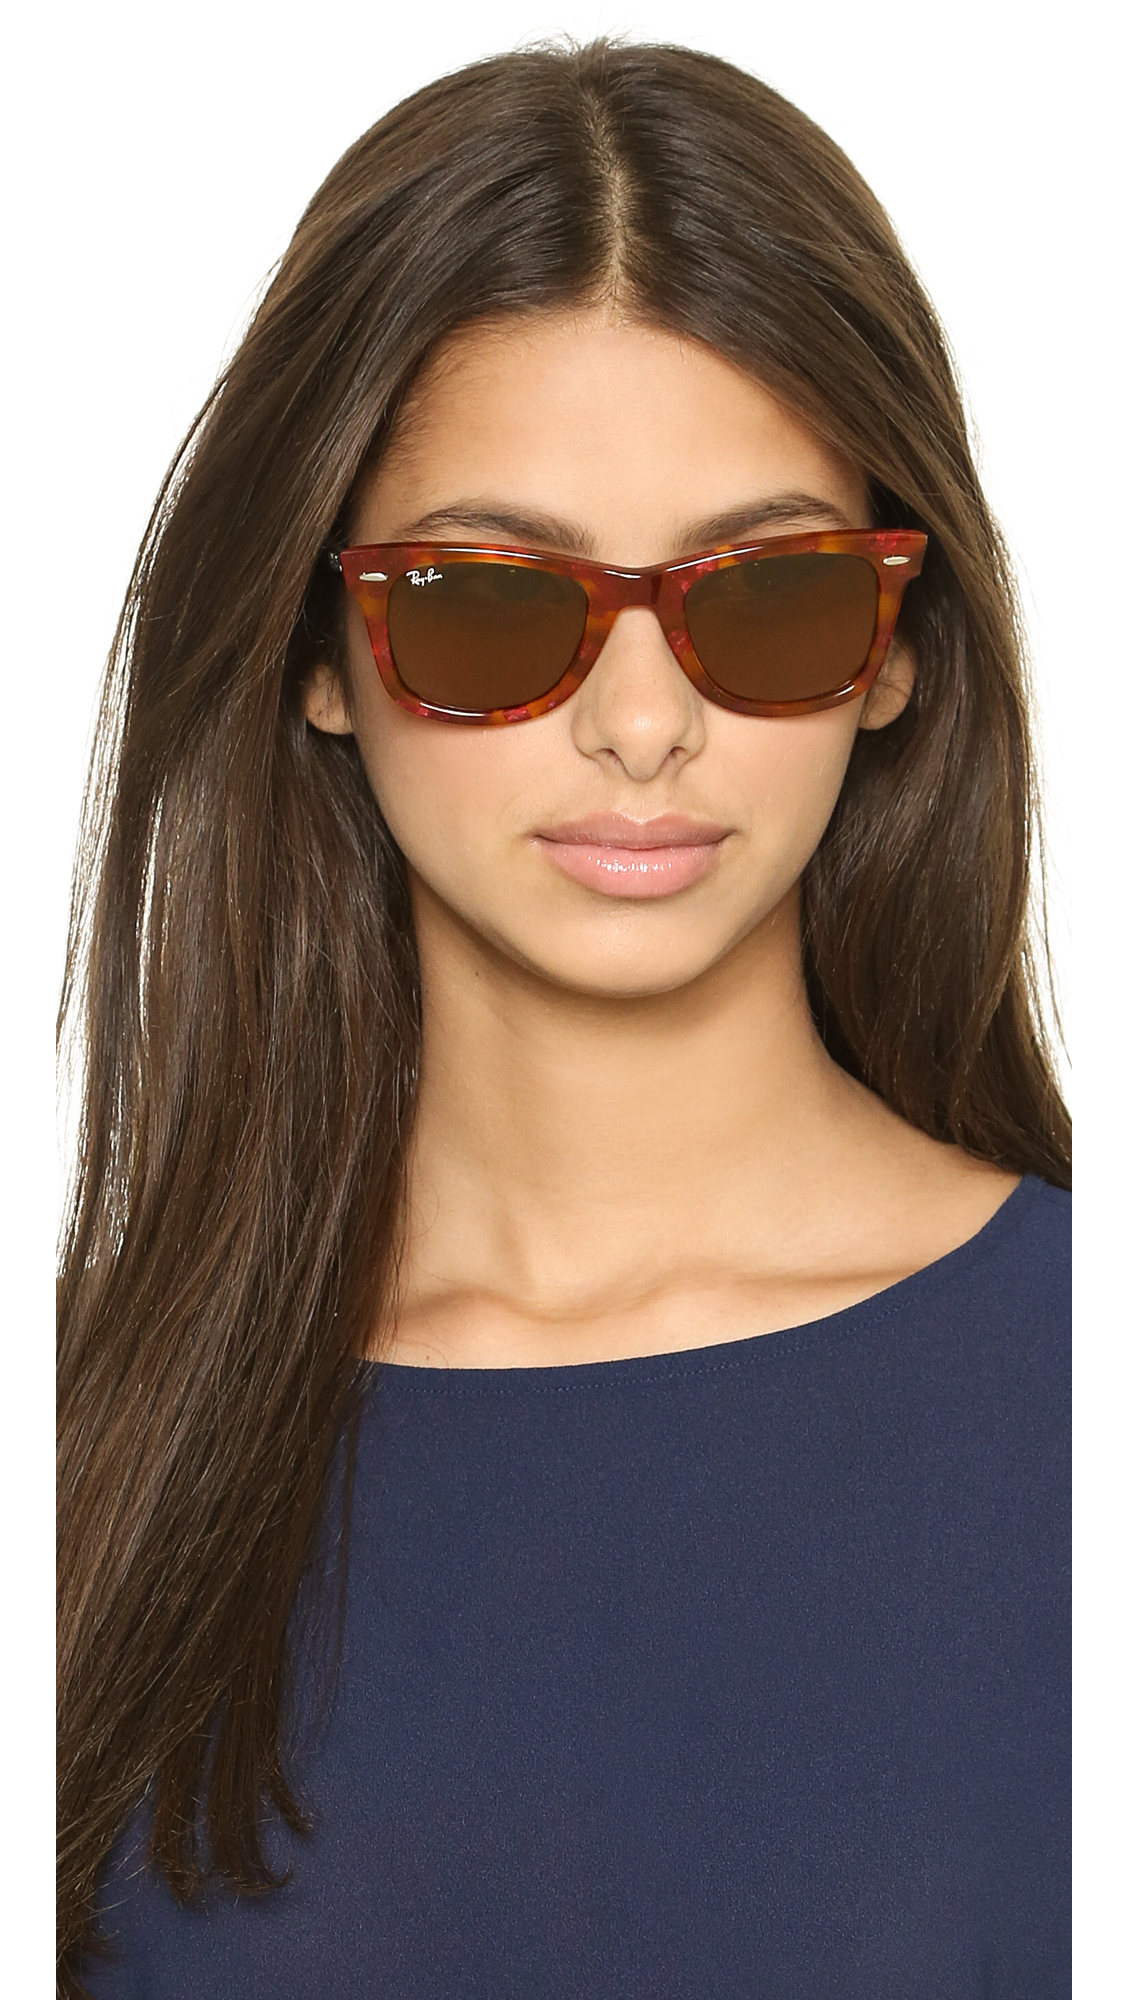 ray ban havana clubmaster  Ray-ban Icons Wayfarer Sunglasses - Spotted Black Havana/Black in ...